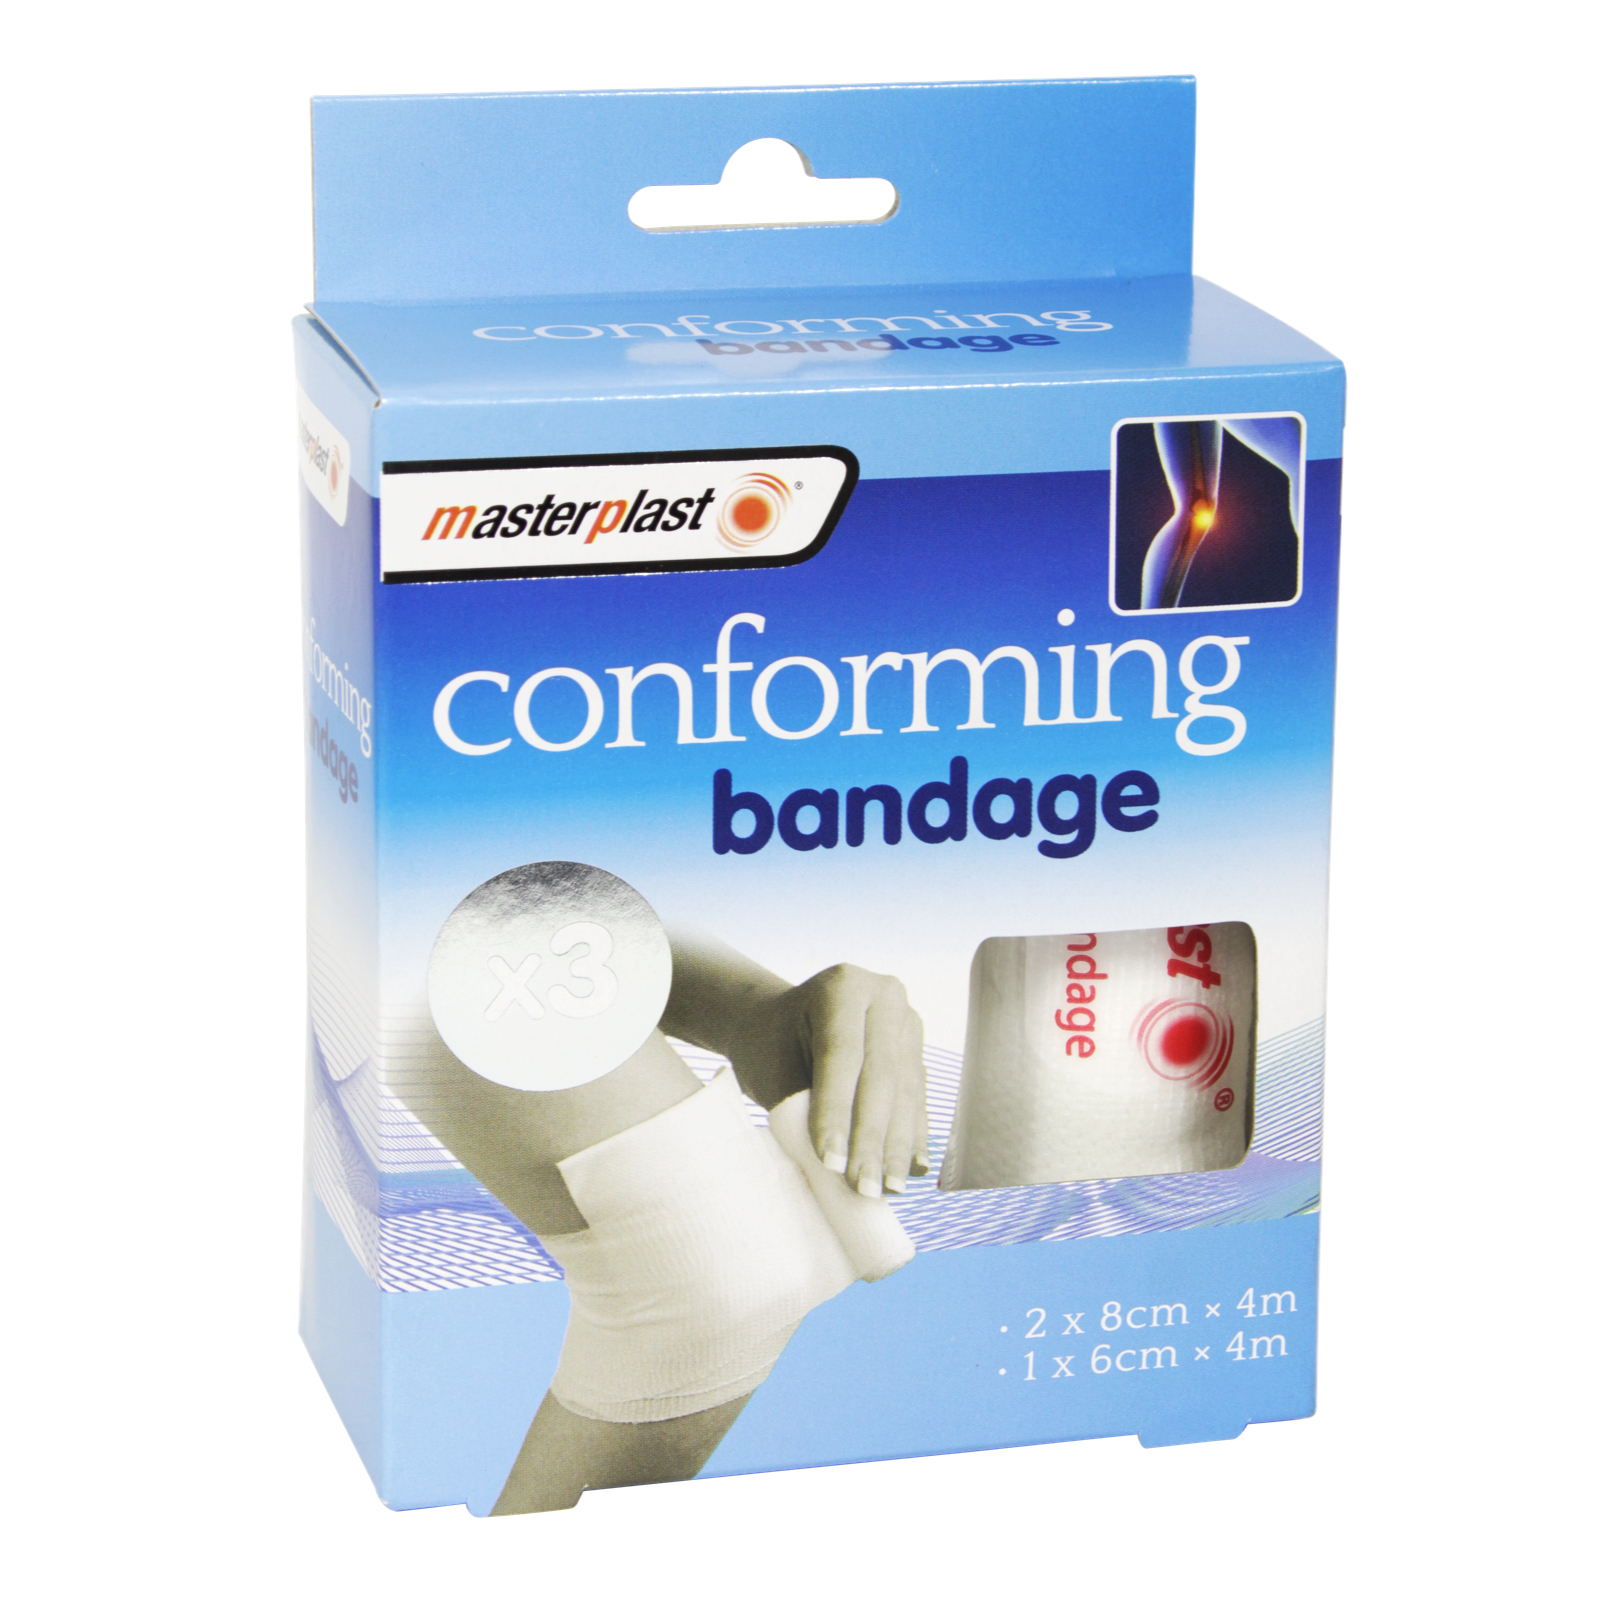 MASTERPLAST 5PK CONFORM BANDAGES